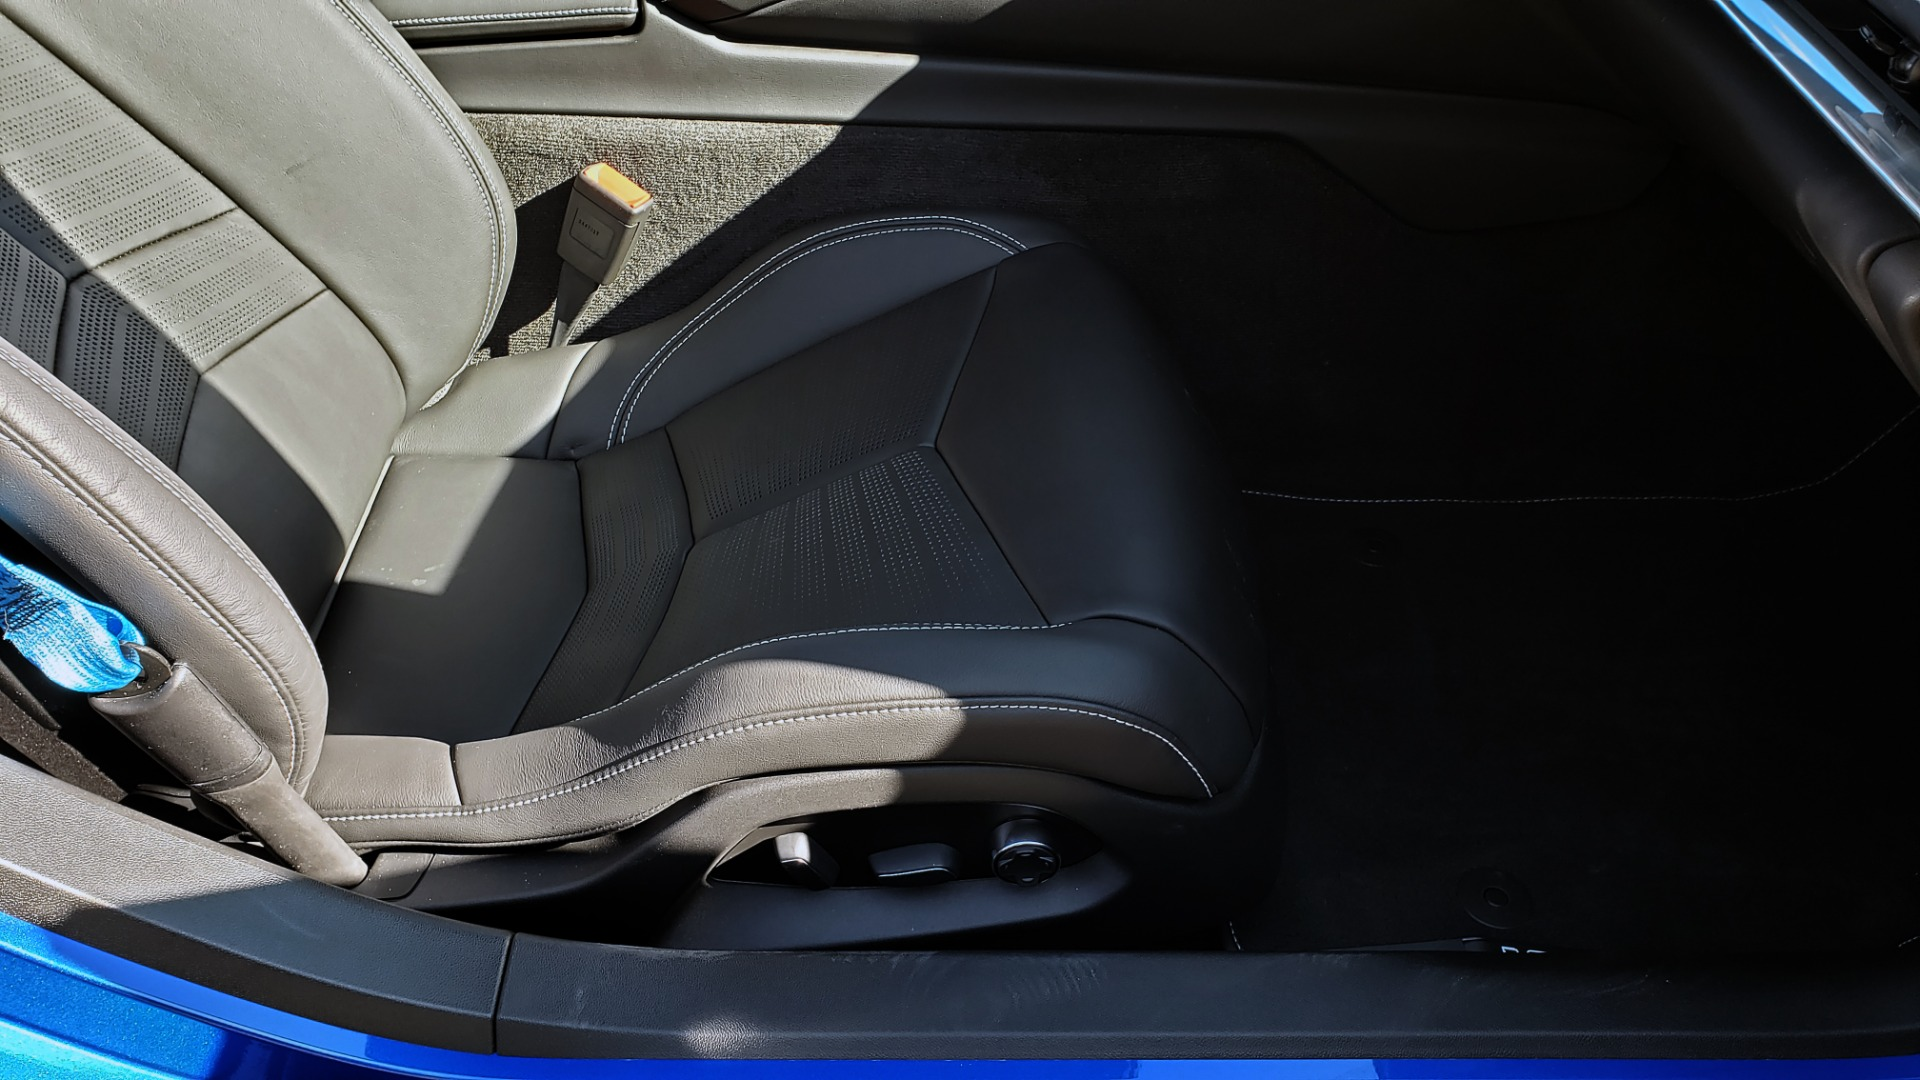 Used 2020 Chevrolet C8 CORVETTE STINGRAY 2LT COUPE / NAV / HUD / BOSE / GT2 SEATS / FRONT LIFT / REARVIEW for sale Sold at Formula Imports in Charlotte NC 28227 81